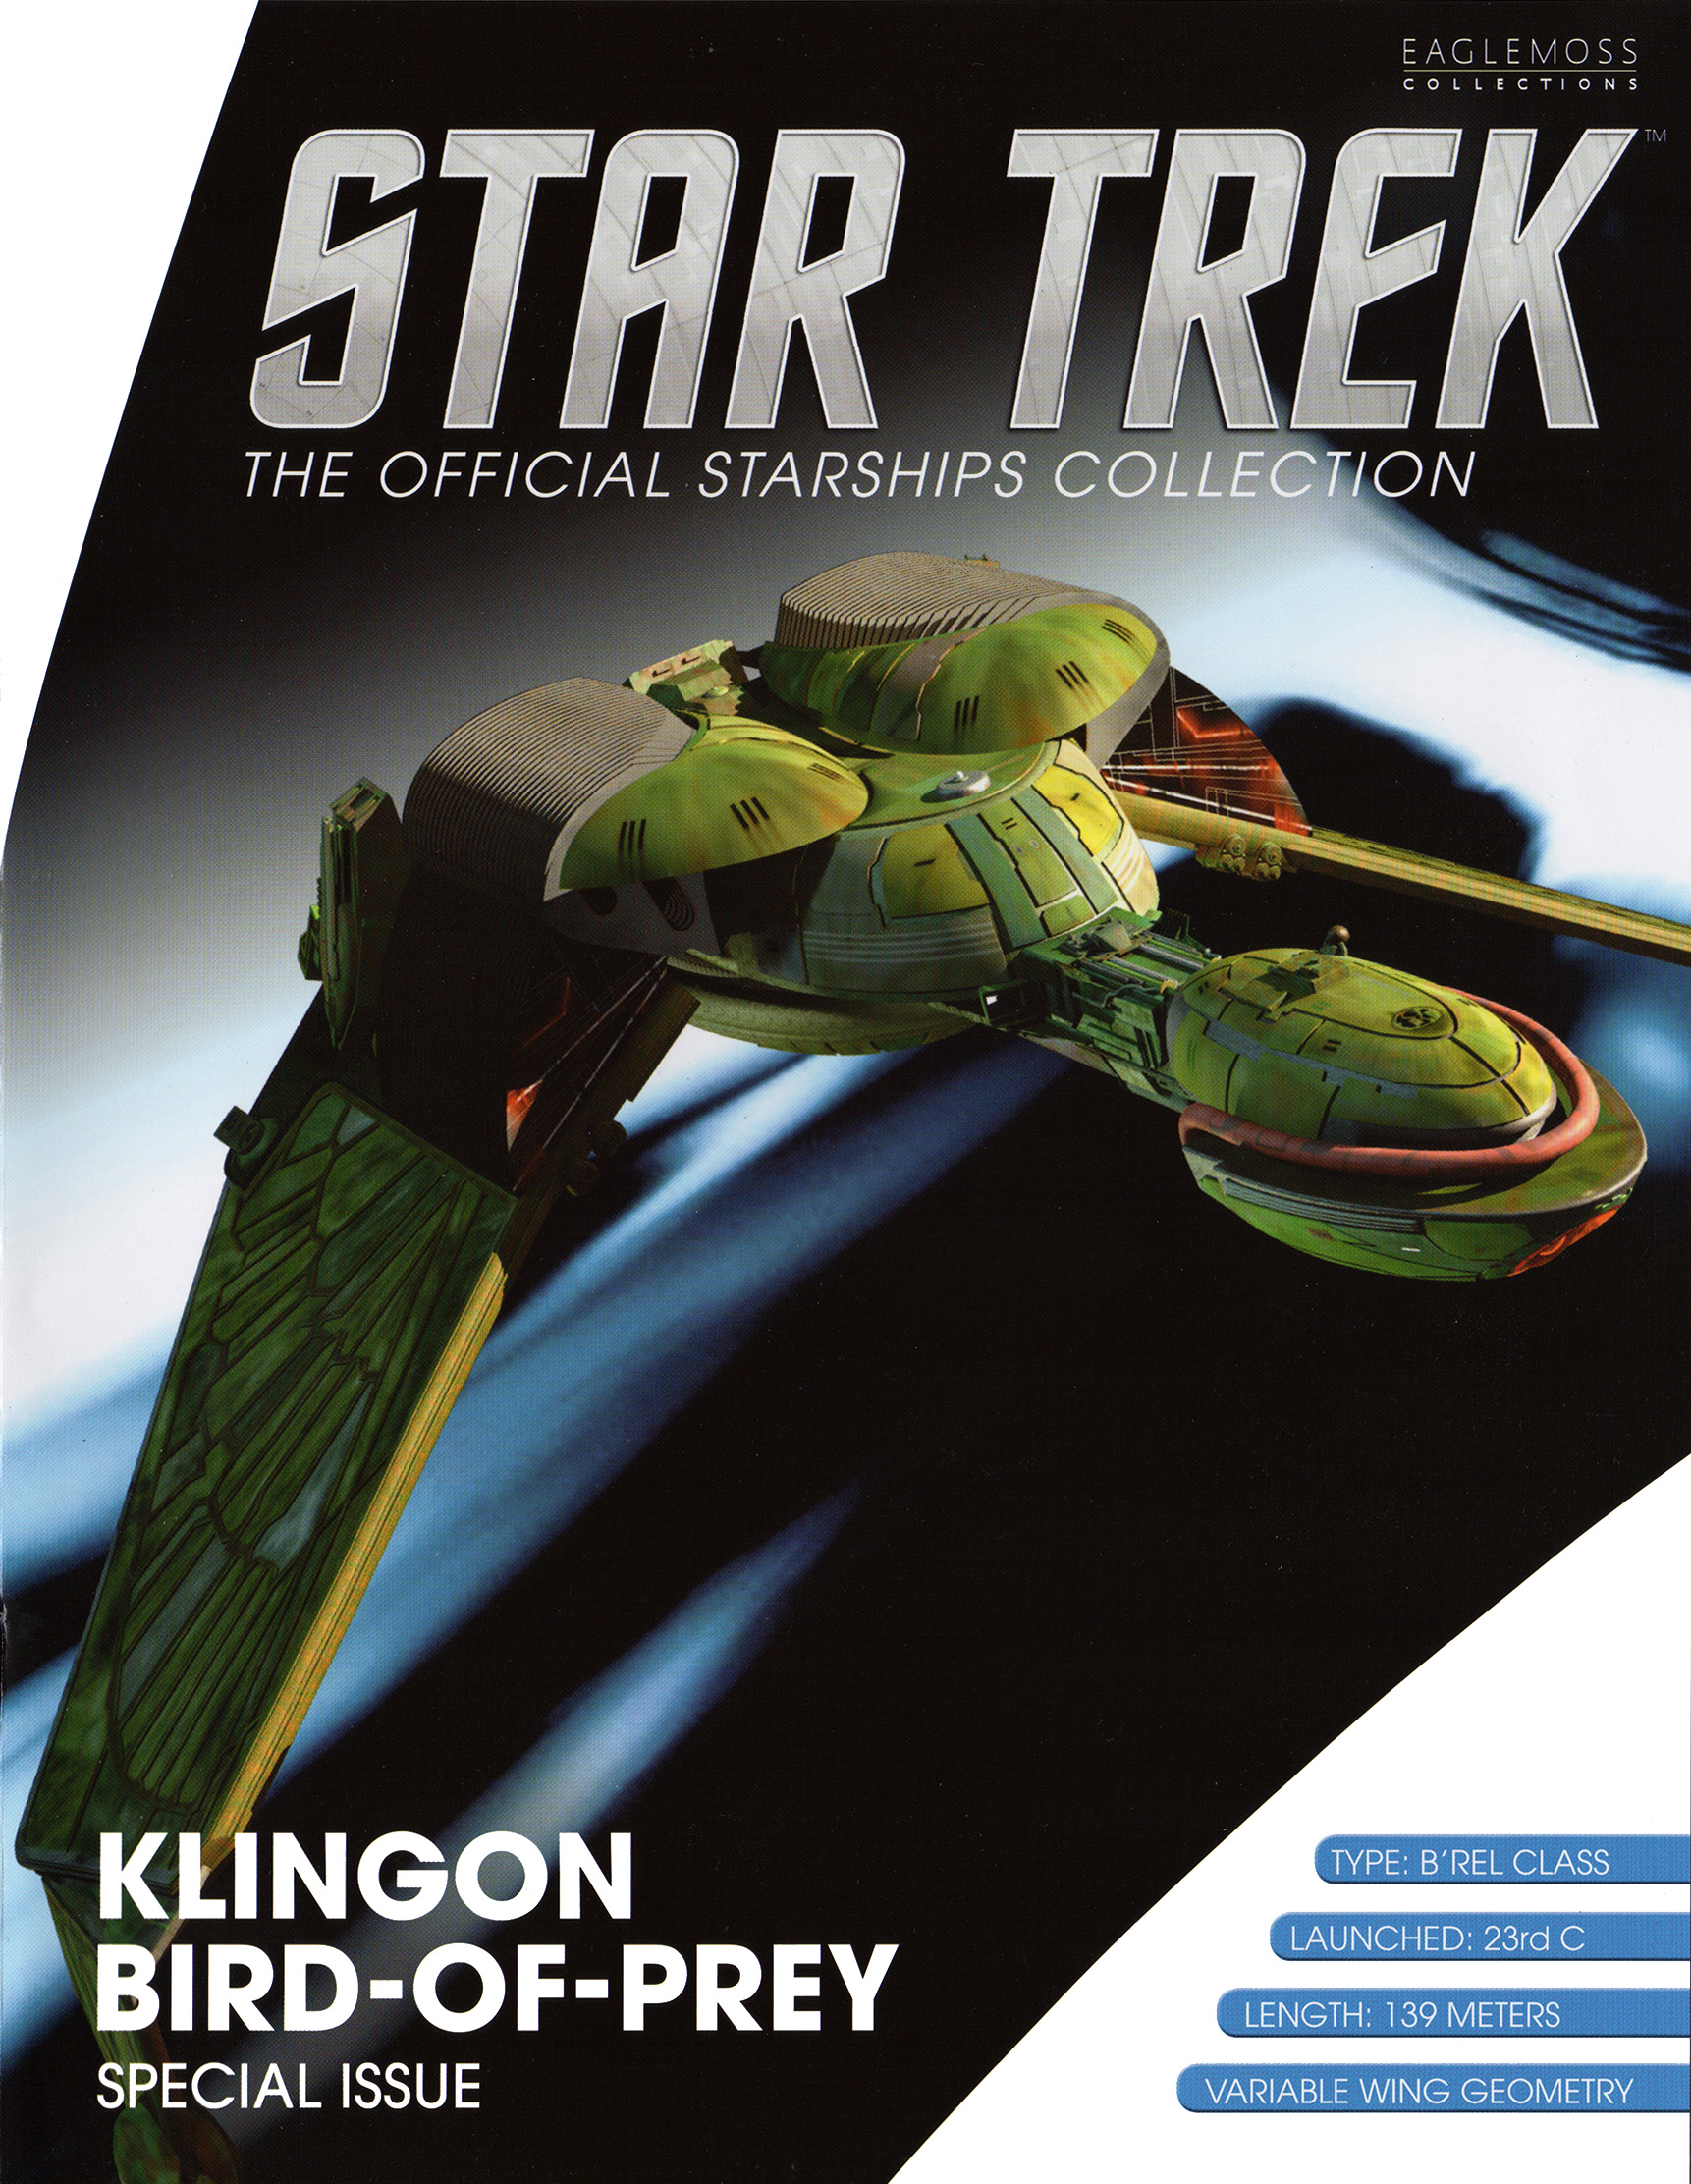 Eaglemoss Star Trek Starships XL Issue 13